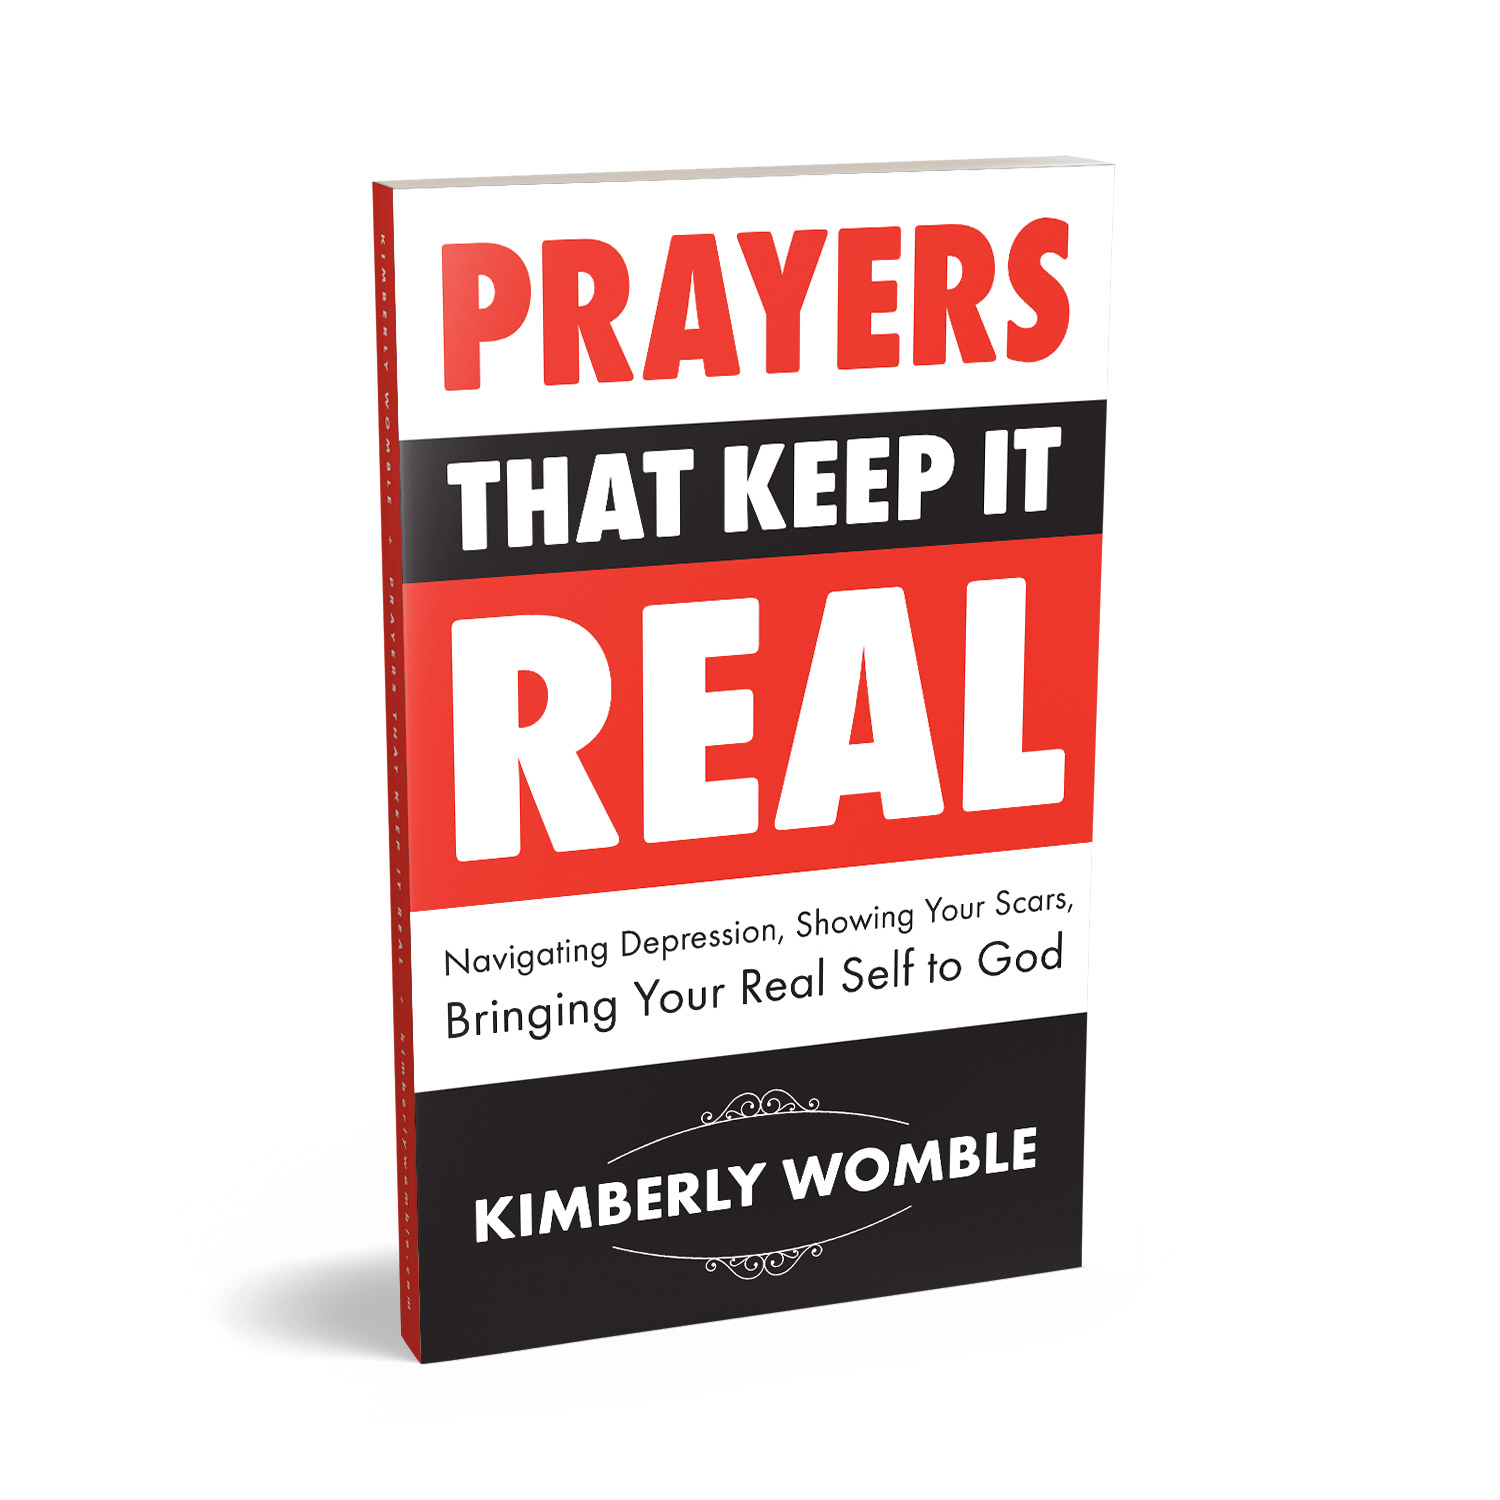 'Prayers That Keep It Real' is a faith-based, self-help book. The author is Kimberly Womble. The book cover & interior design are by Mark Thomas. To learn more about what Mark could do for your book, please visit coverness.com.